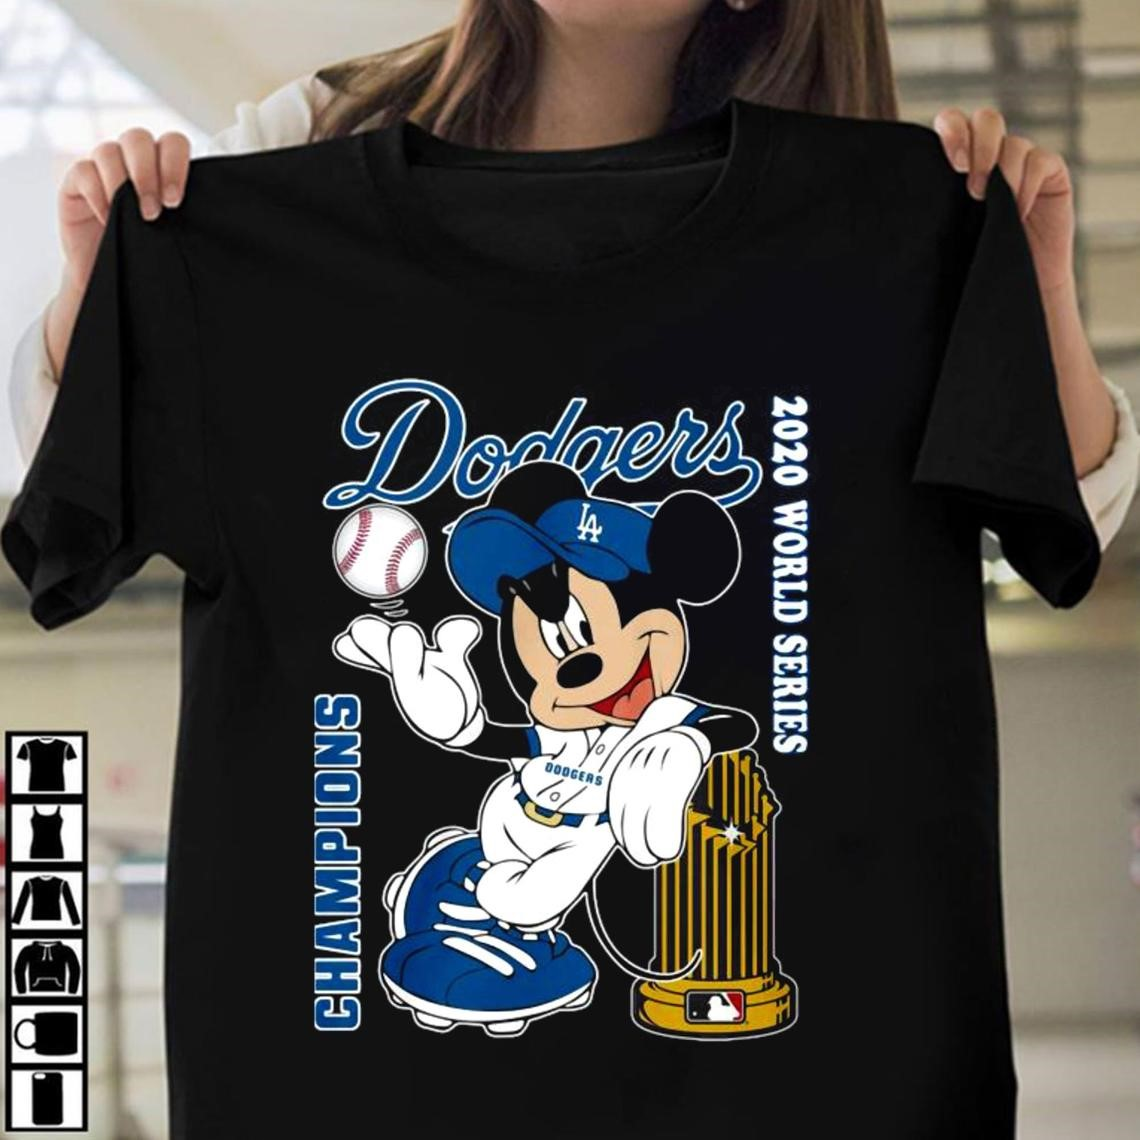 Mickey Mouse Los Angeles Dodgers Champions 2020 World Series Shirt La Dodgers Champions 2020 World Series